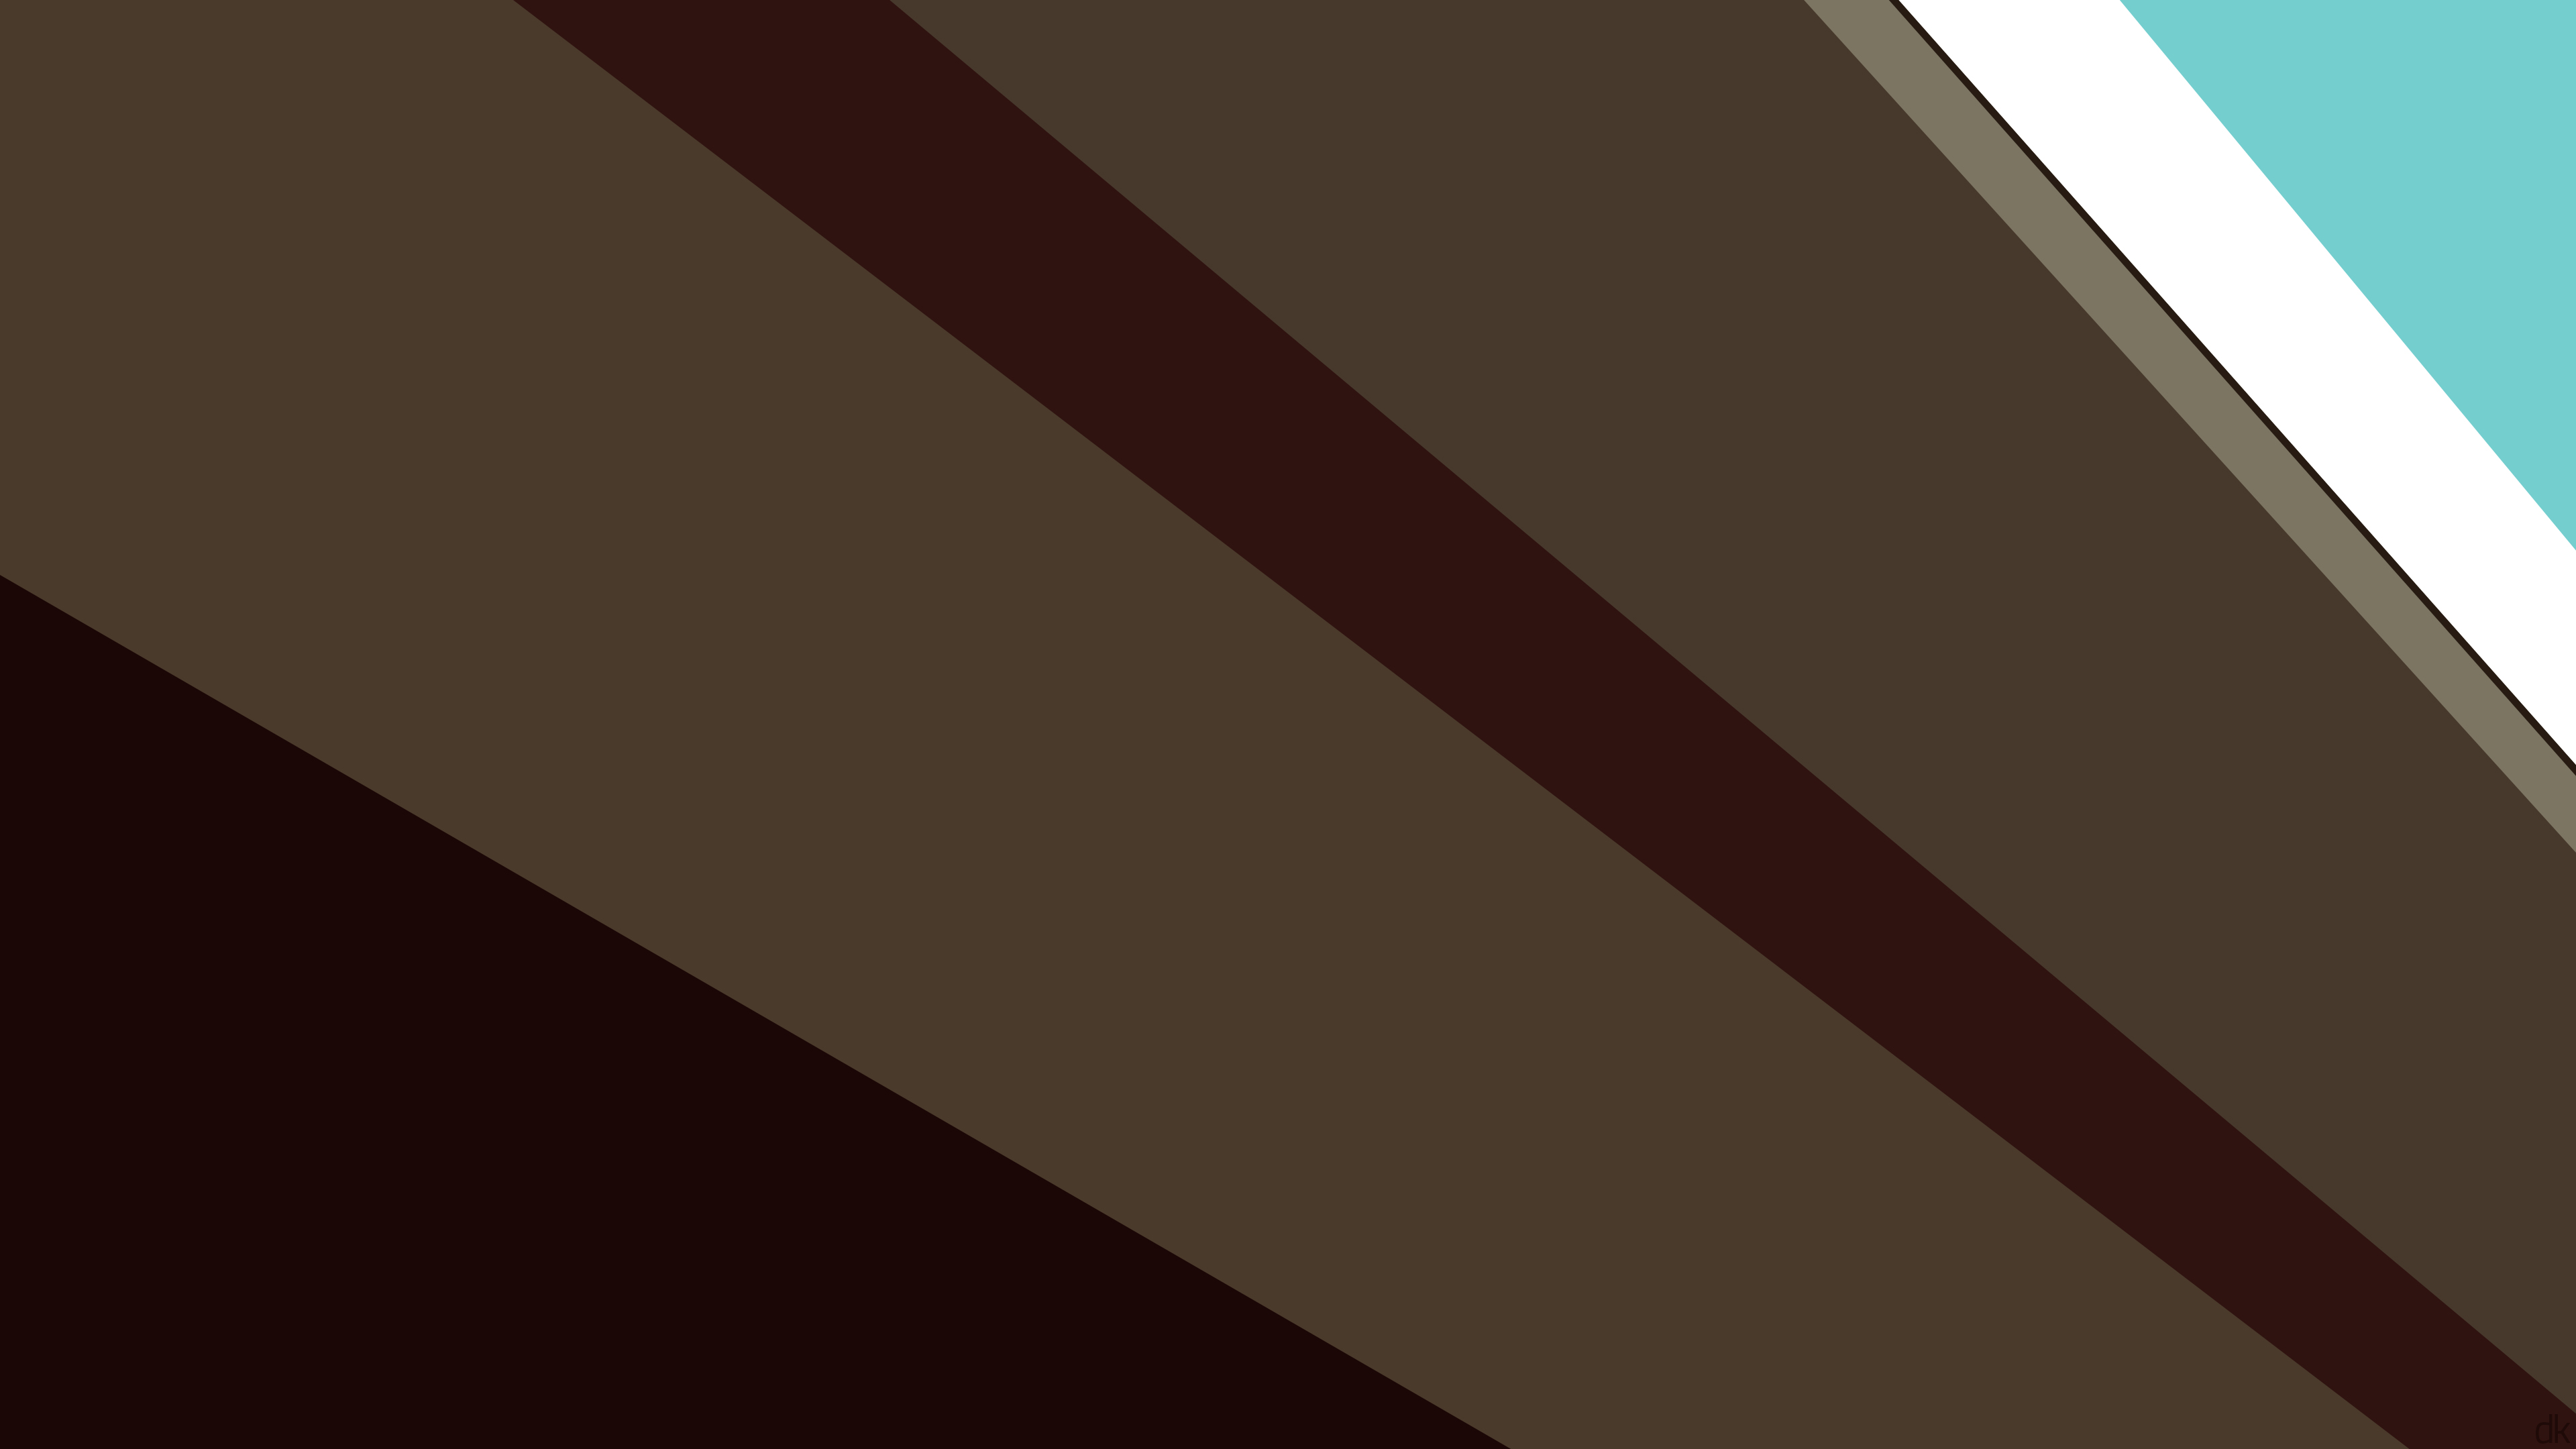 android l wallpaper 4k by dakoder customization wallpaper minimalistic 3840x2160